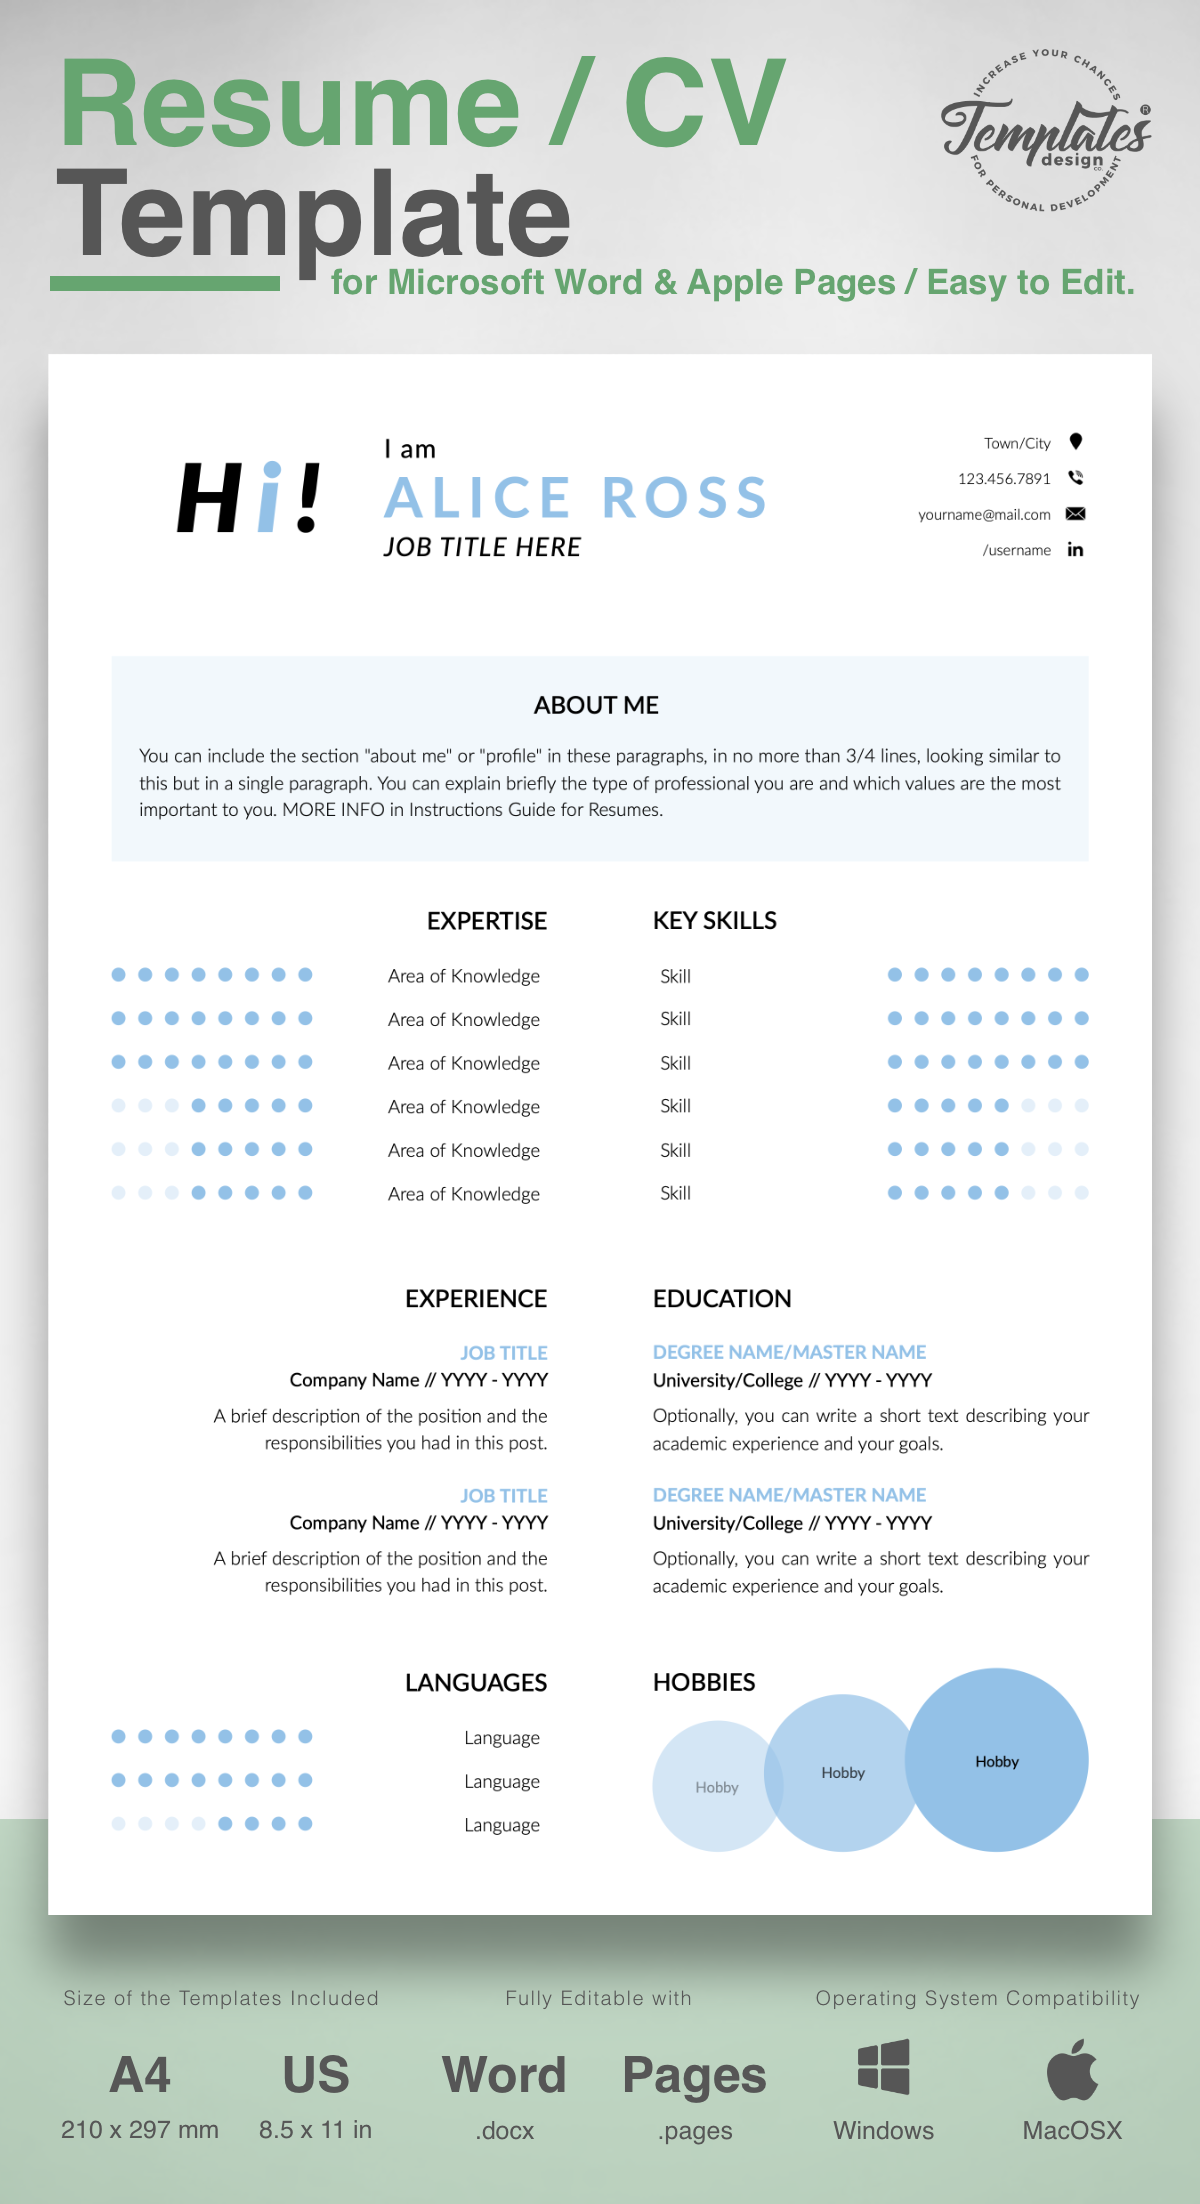 Alice Ross Creative Resume Cv Template For Word Pages Us Letter A4 Files 1 2 3 Page Resume Version Cover Letter References Cover Letter